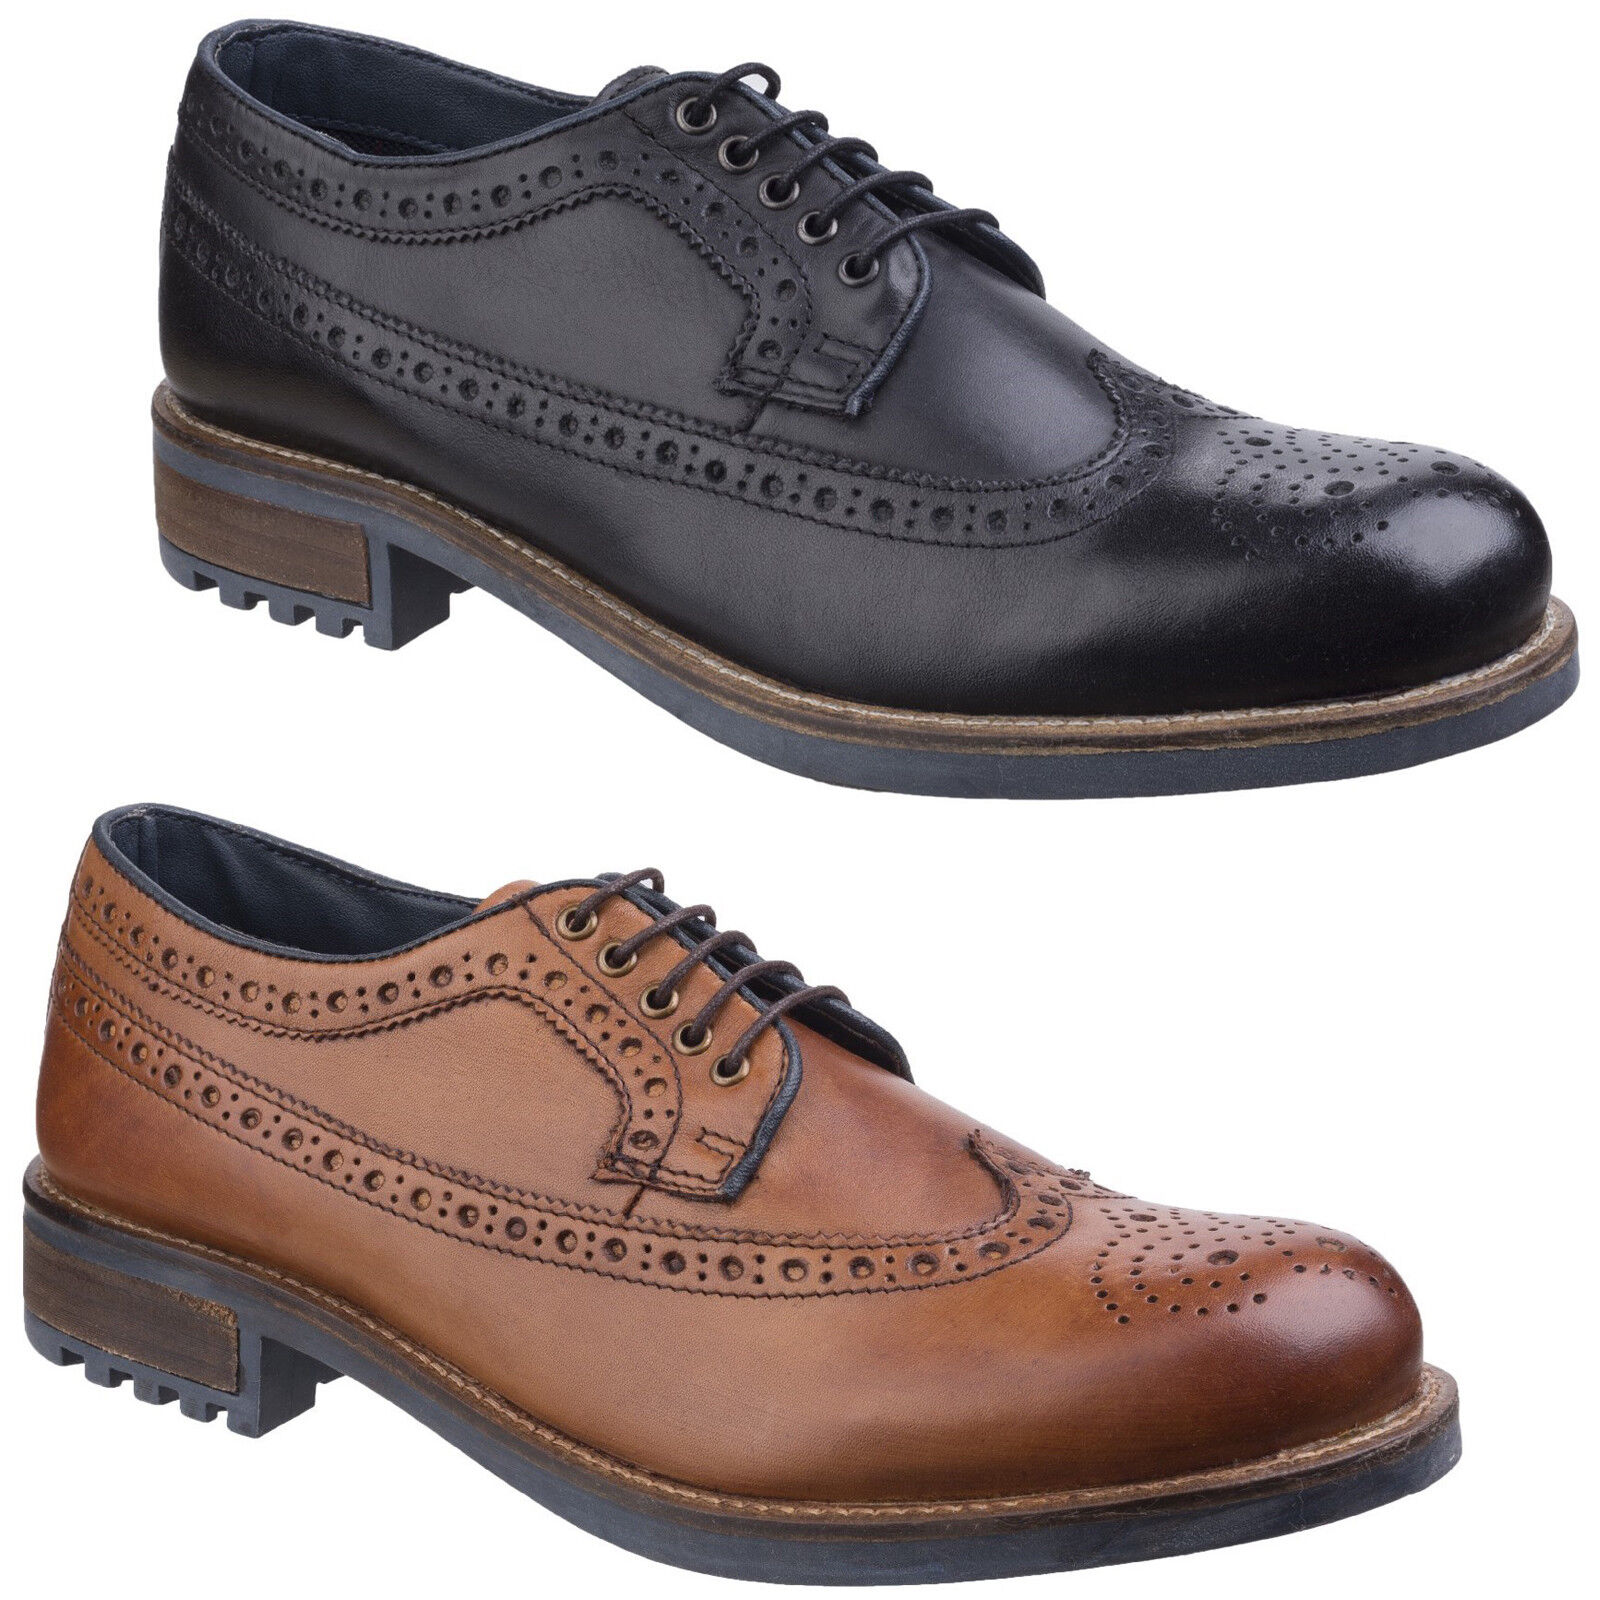 Cotswold Poplar Brogue Leder  Uomo Dress Schuhe Leder Brogue Lace Up Formal WIng Tip Footwear a4da3b